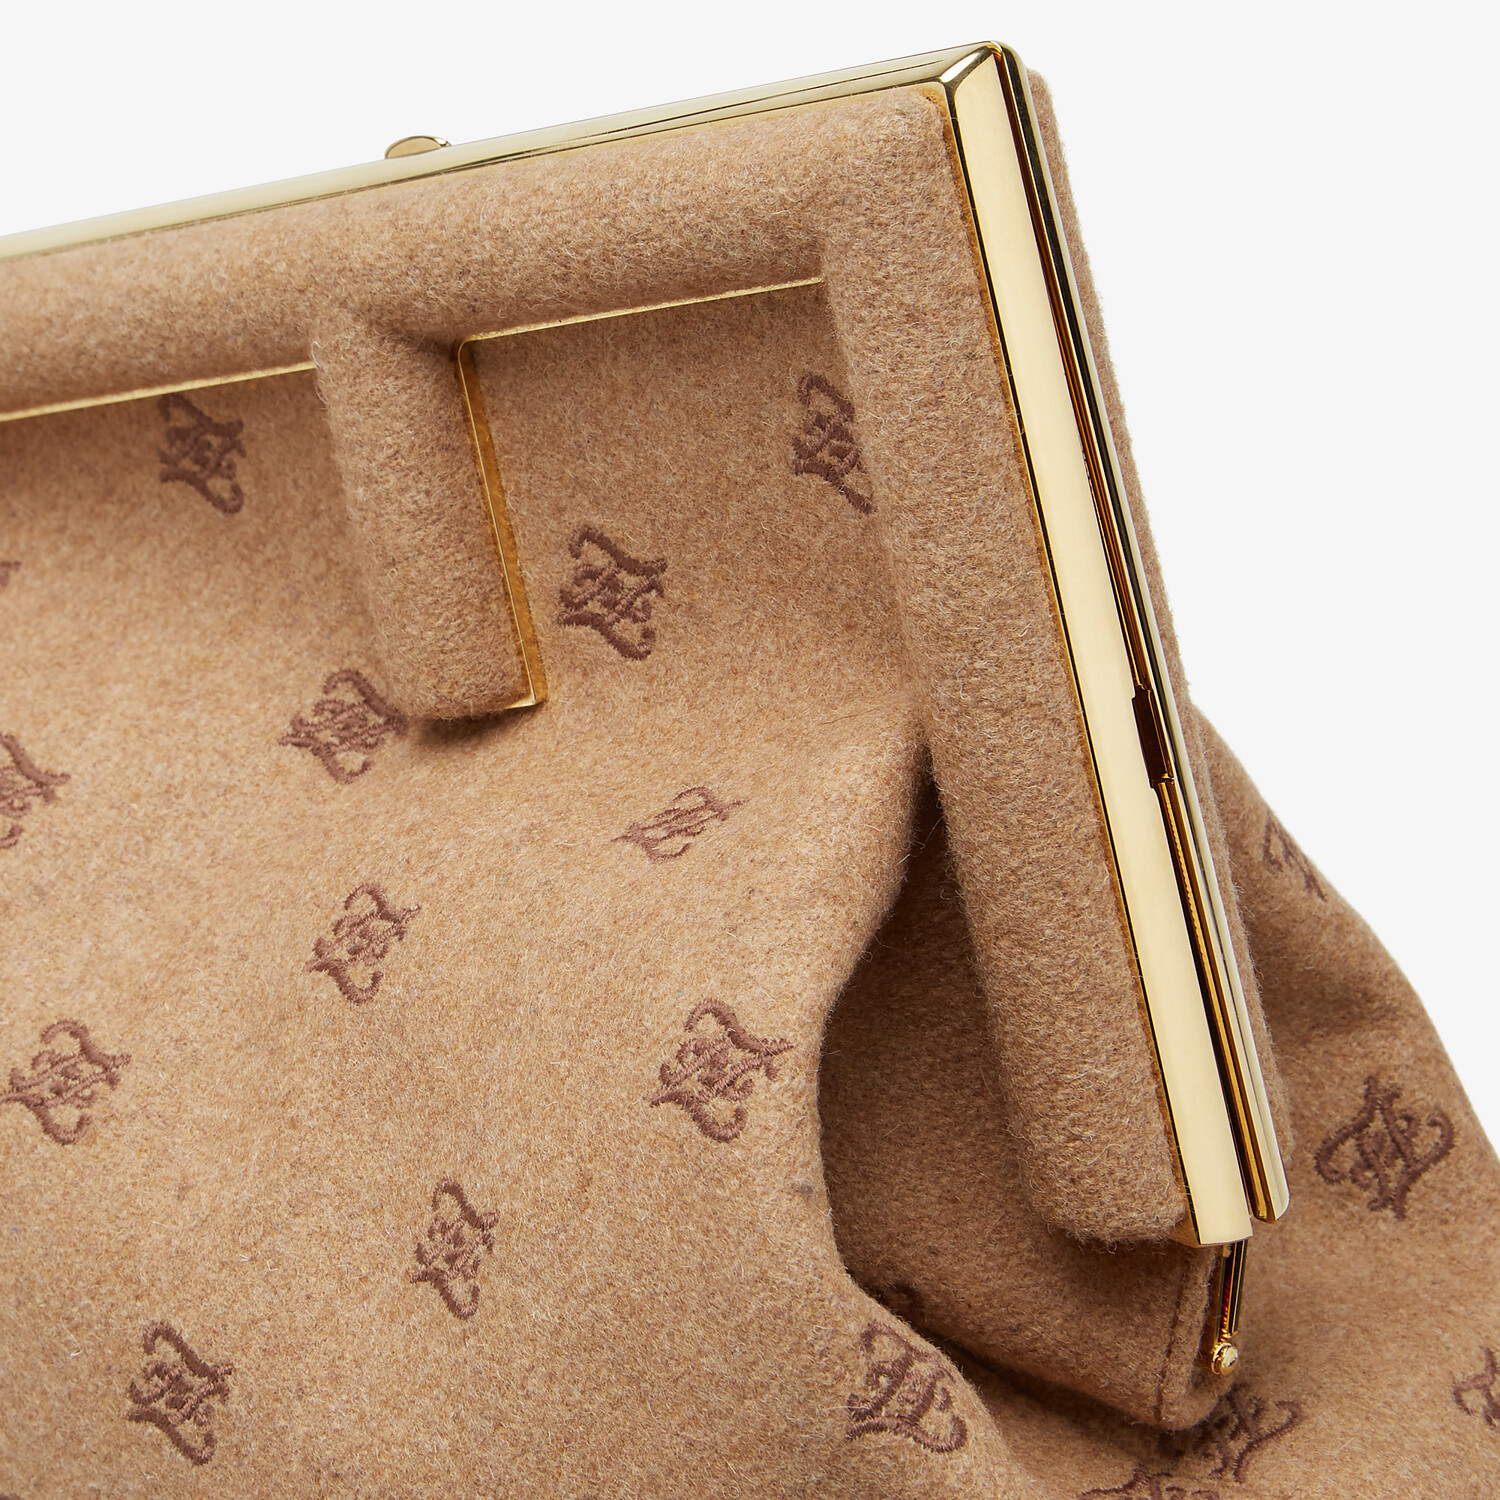 FENDI FENDI FIRST MEDIUM - Beige flannel bag with embroidery - view 6 detail